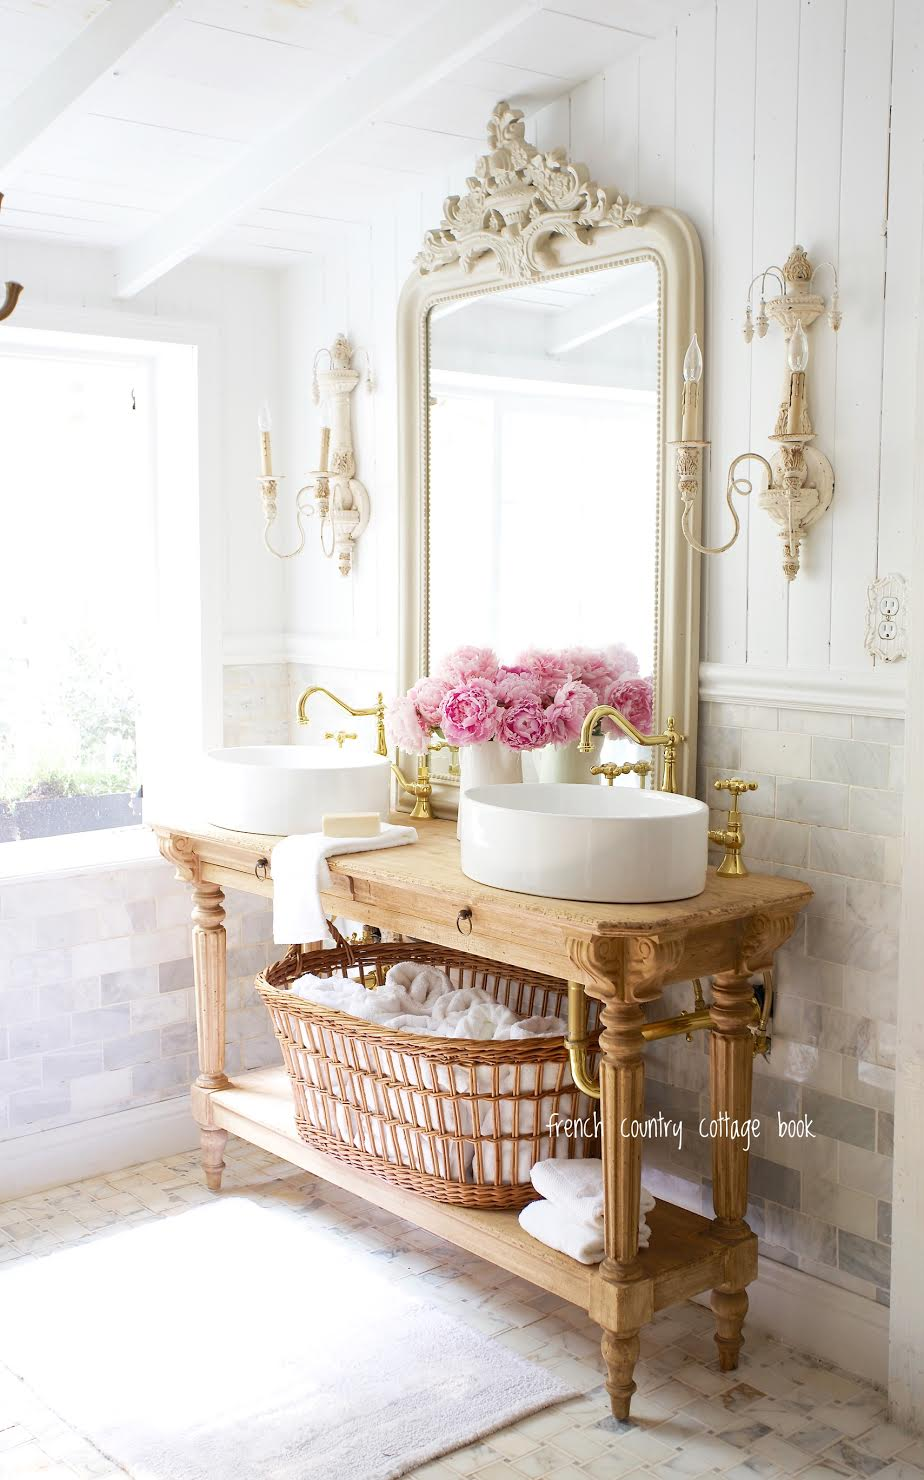 5 Minute Decorating Five Ways To Style